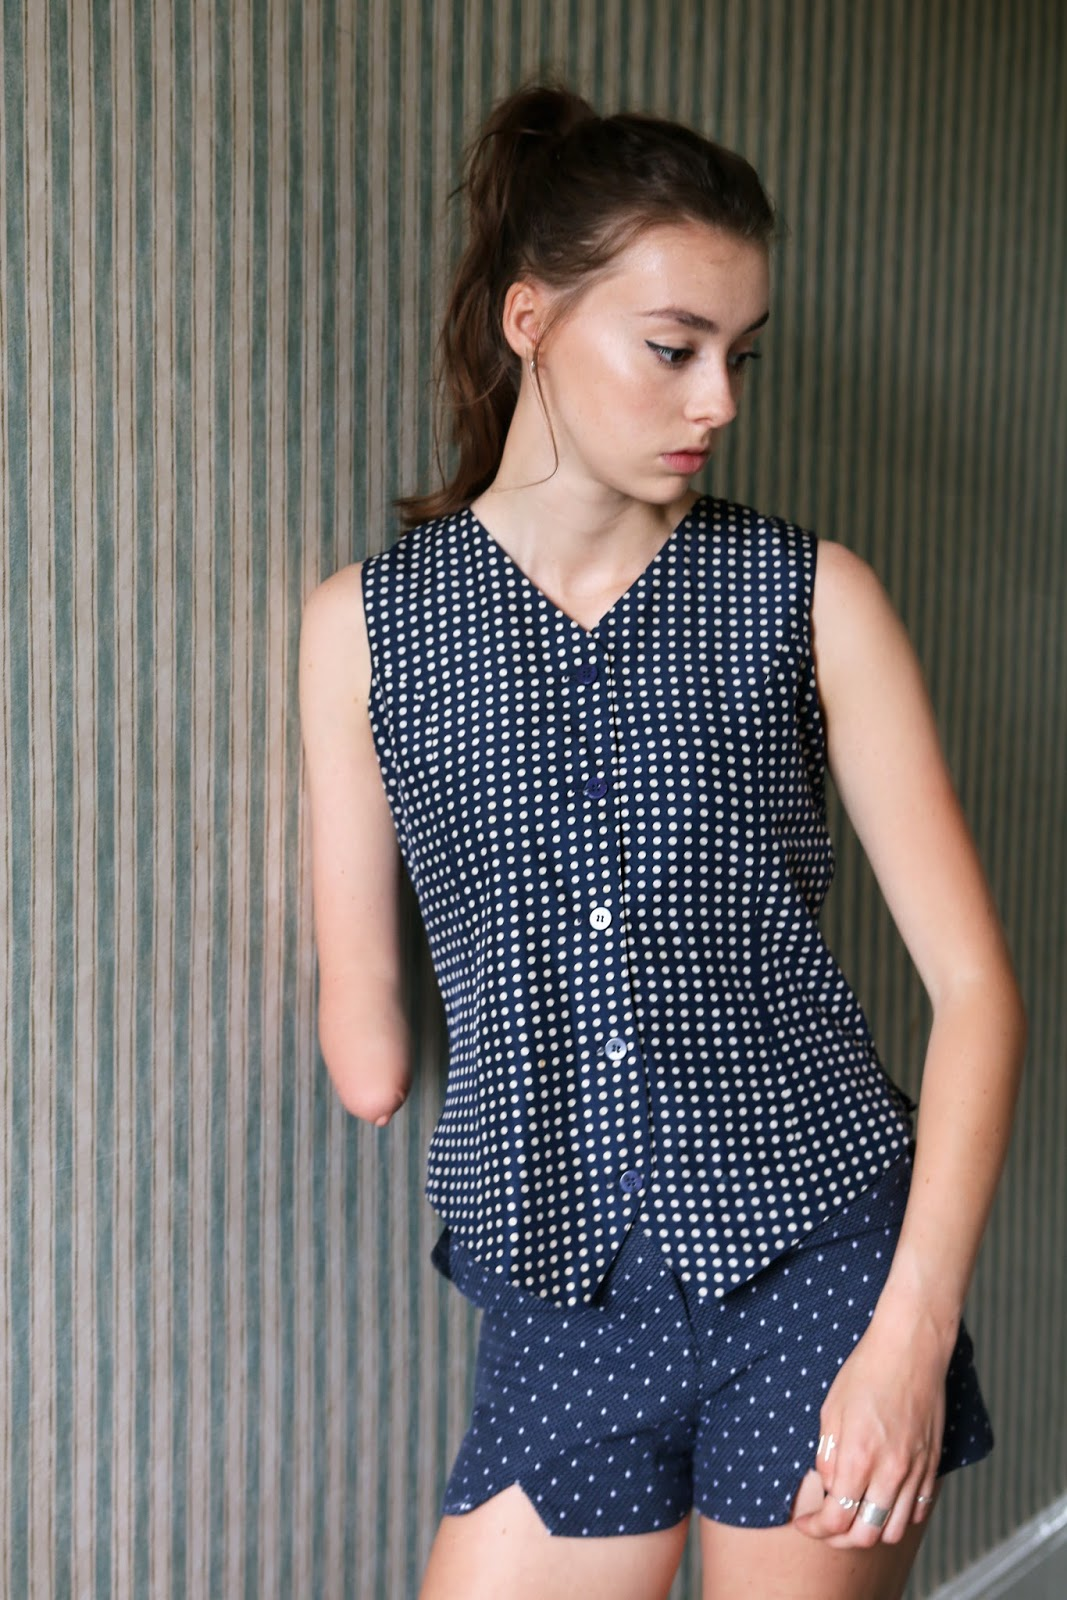 vintage waistcoat, vintage clothing, vintage outfit, polka dot shorts, ootd, fashion blogger, british, grace mandeville, mandeville, one hand, amputee,  fashion sisters, sisters, mandeville sisters, beauty blogger, british, top,